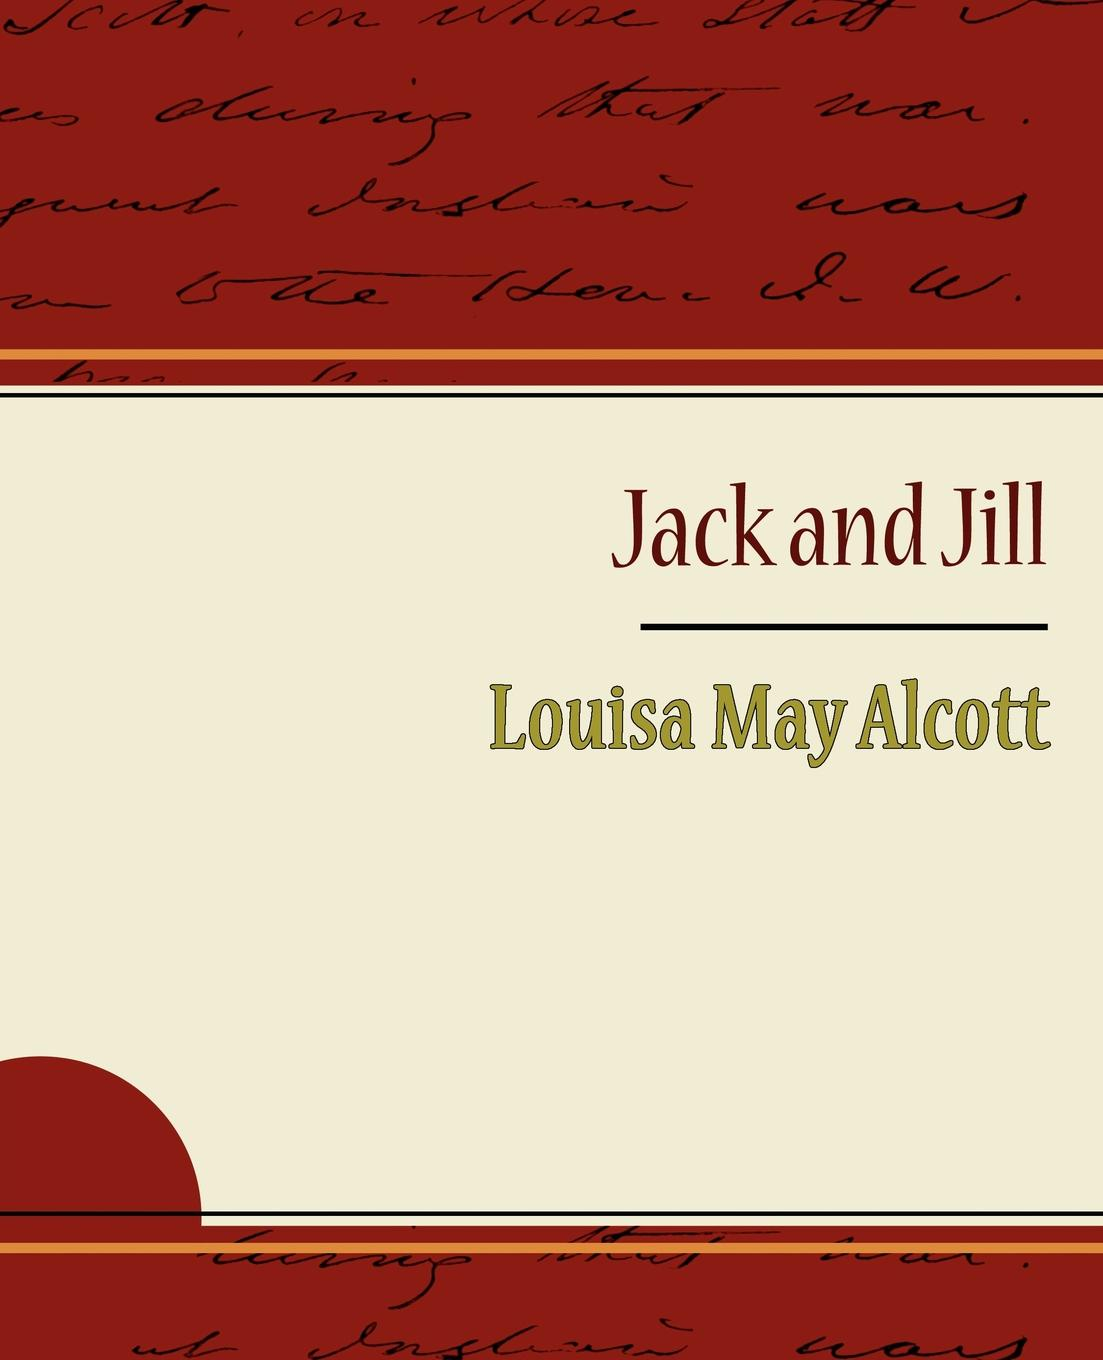 May Alcott Louisa May Alcott, Alcott Louisa May Jack and Jill - Alcott Louisa May may alcott louisa may alcott alcott louisa may jack and jill louisa may alcott